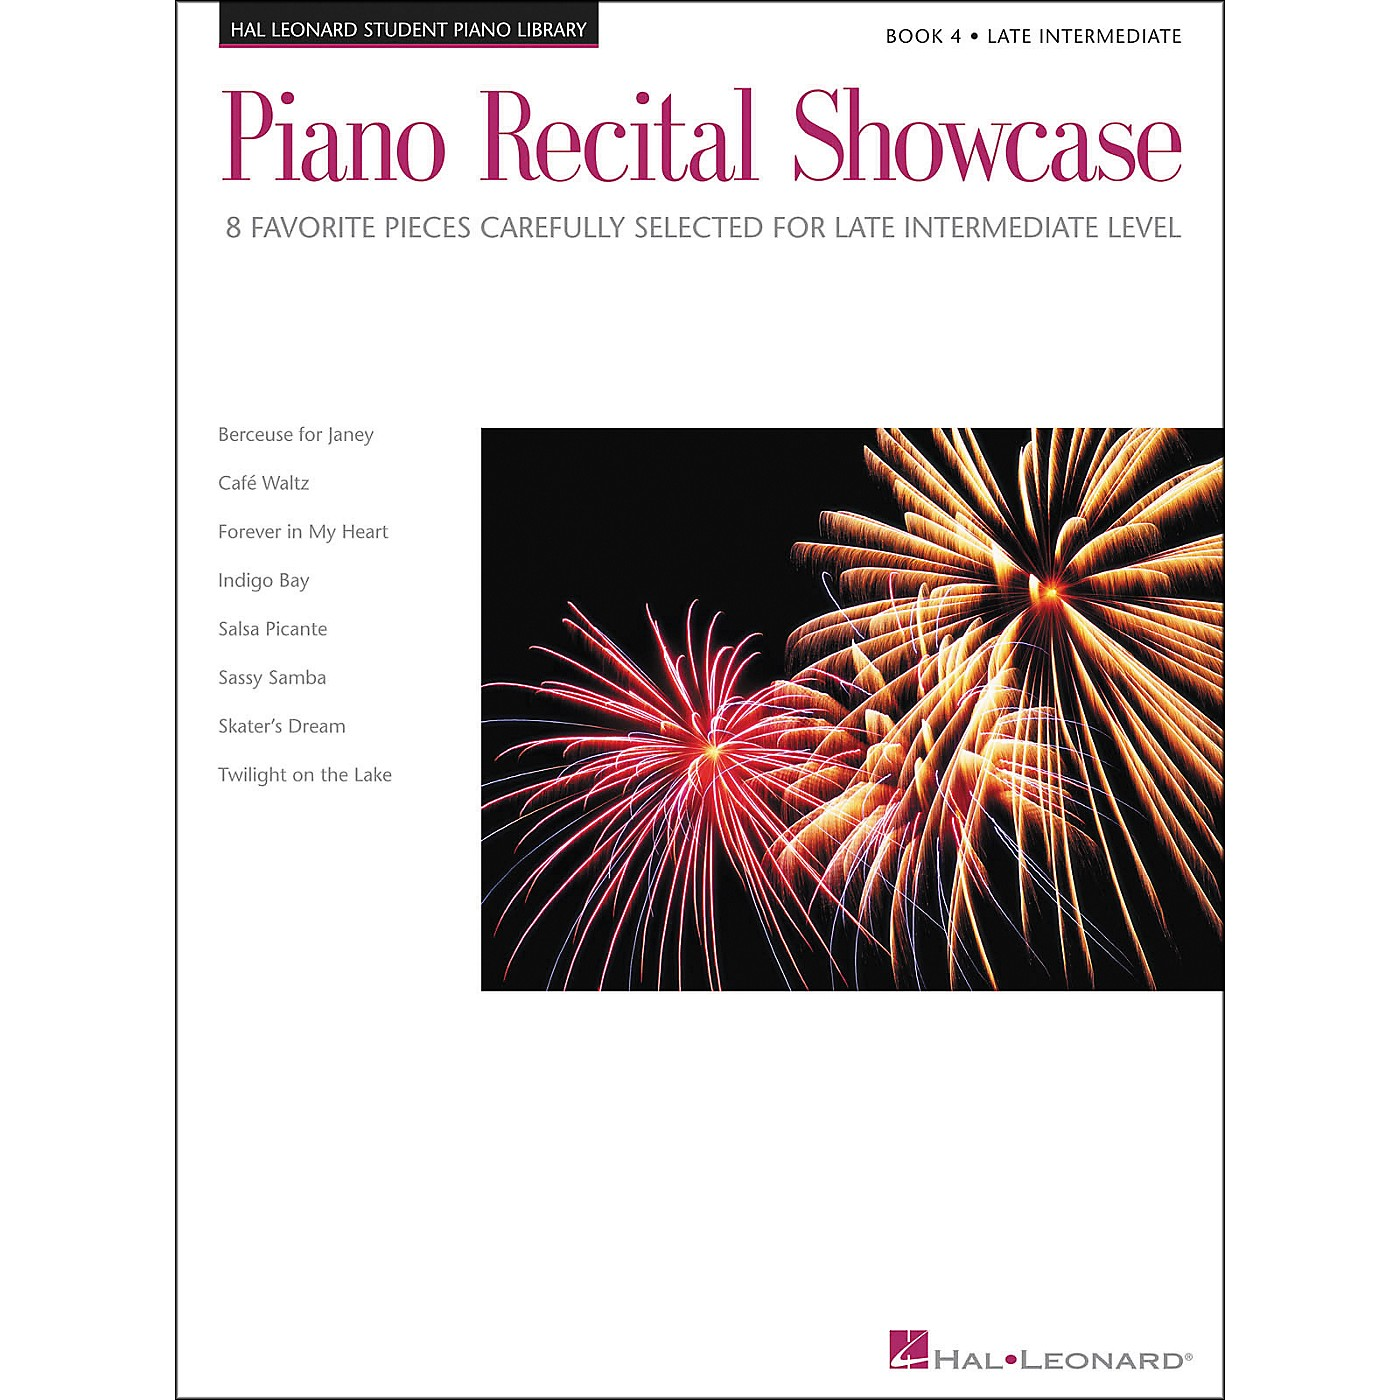 Hal Leonard Piano Recital Showcase Book 4 Late Intermediate Level Hal Leonard Student Piano Library thumbnail